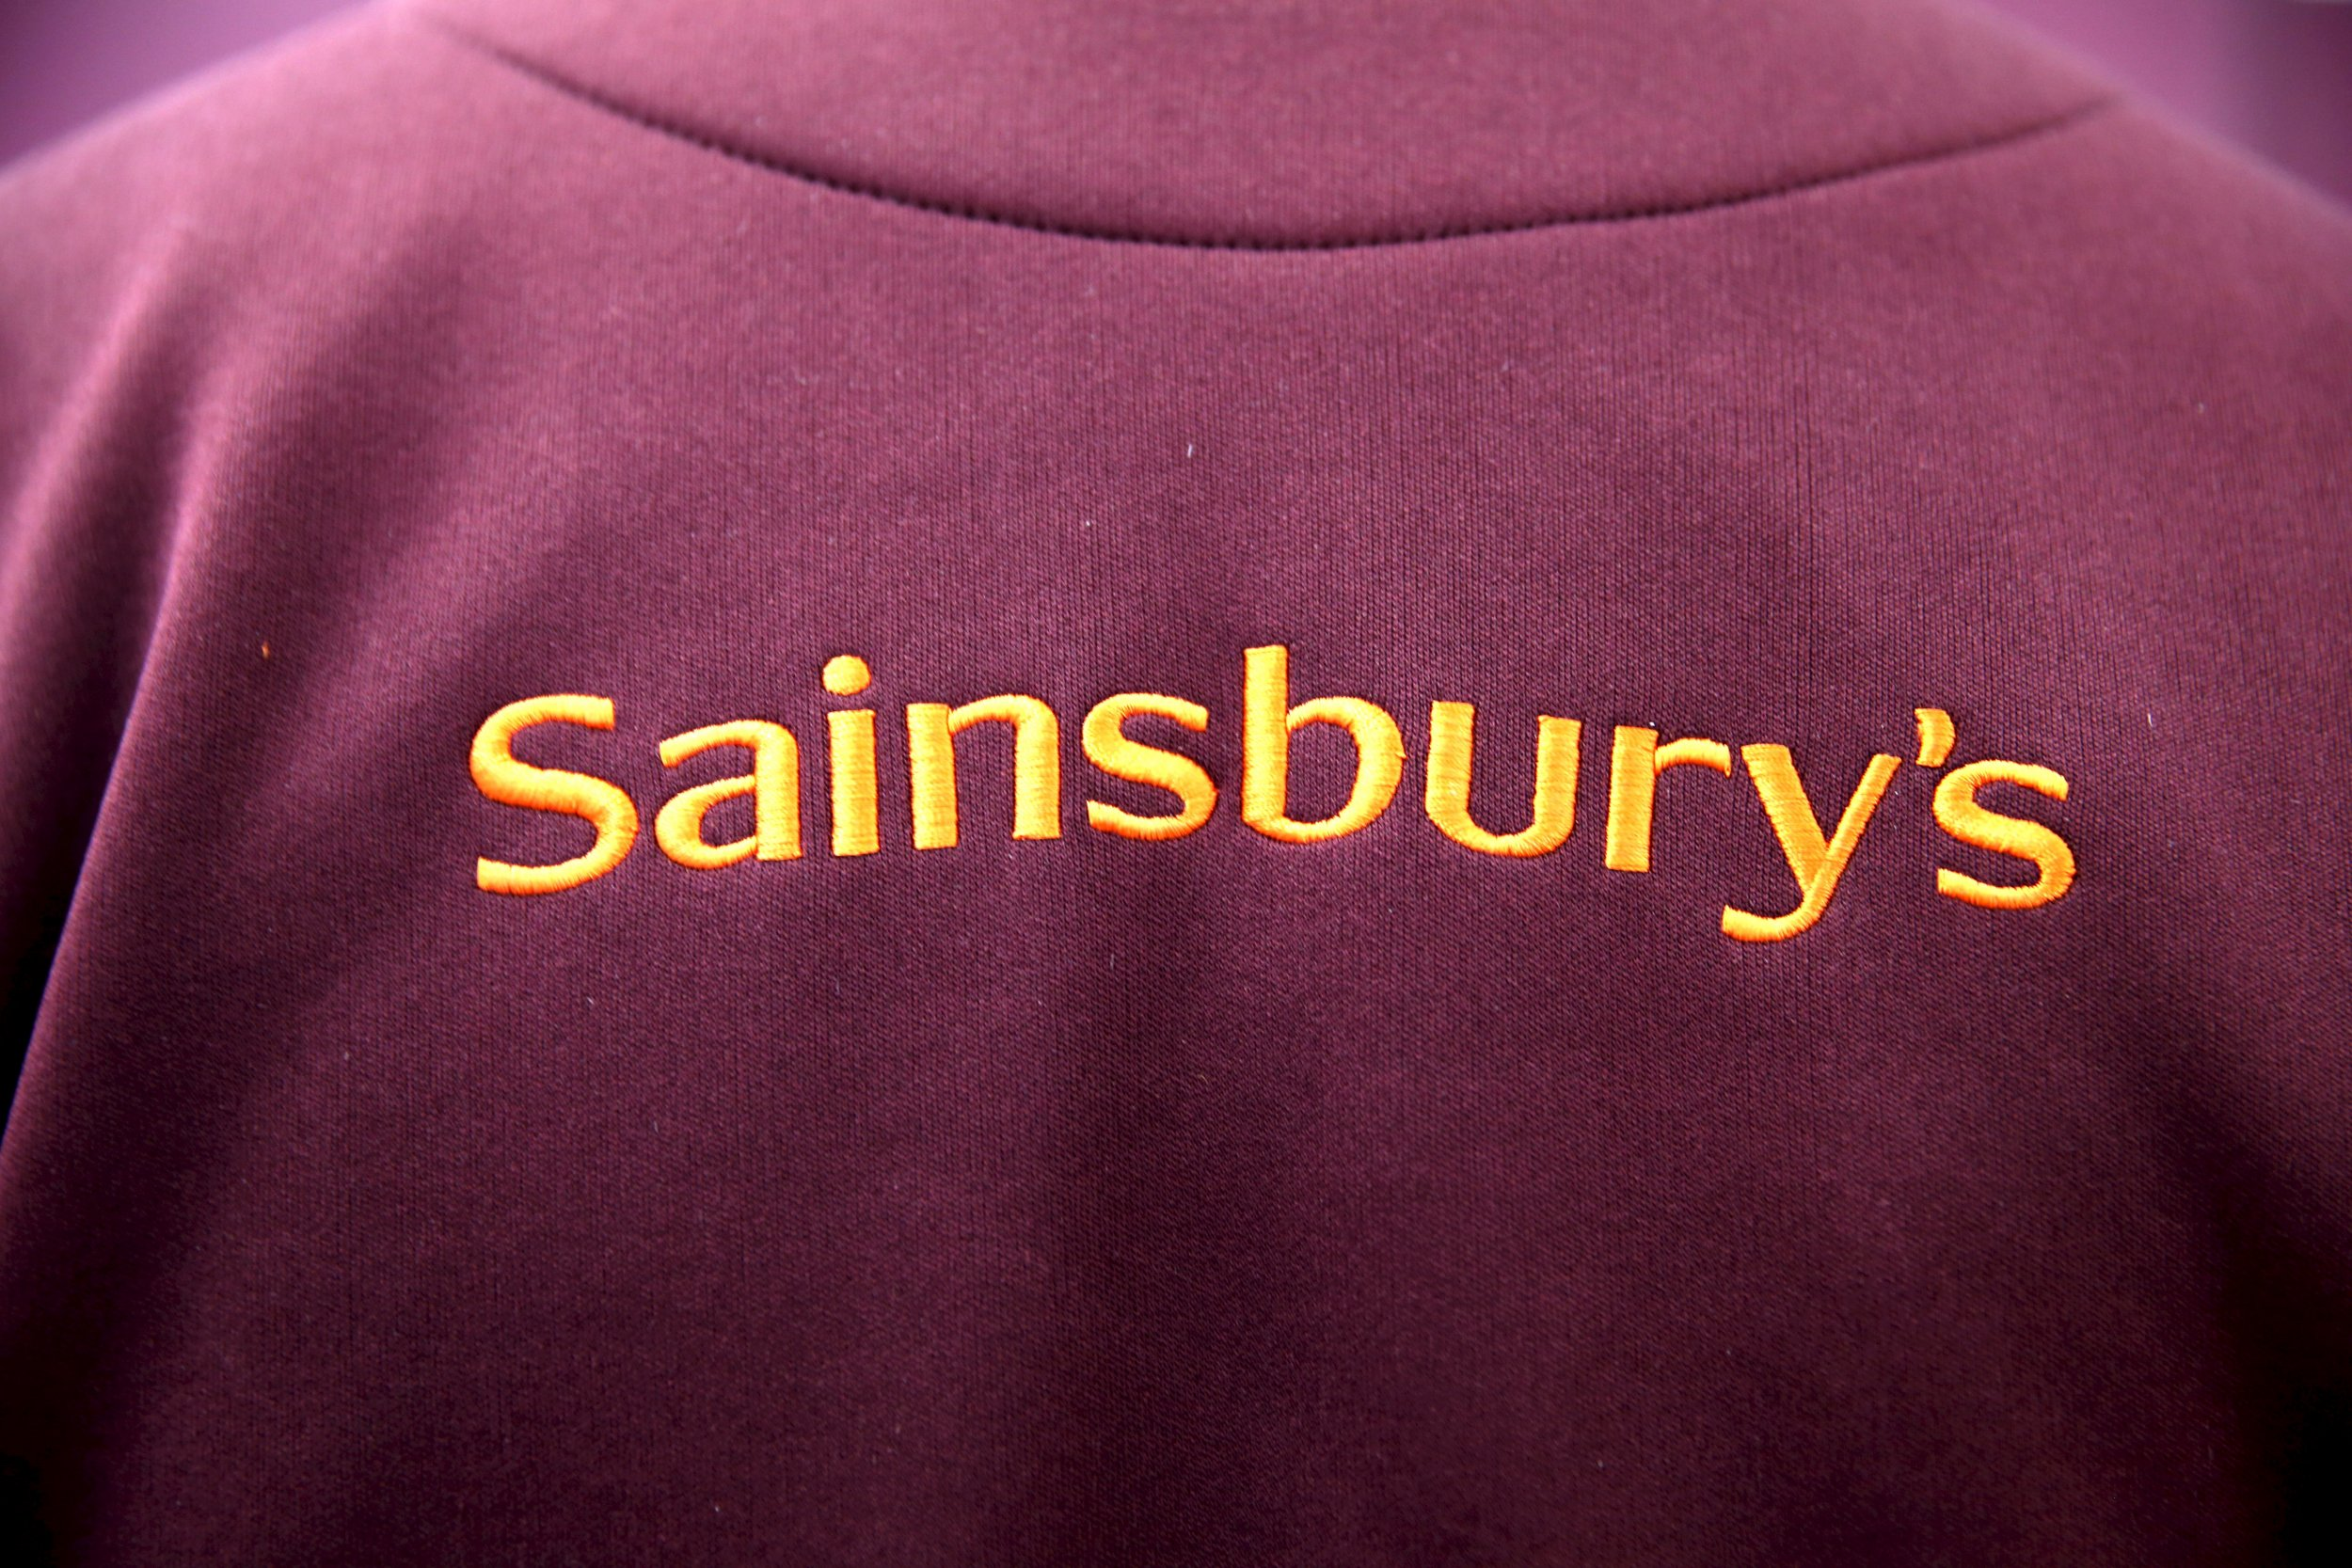 Sainsbury's uniform